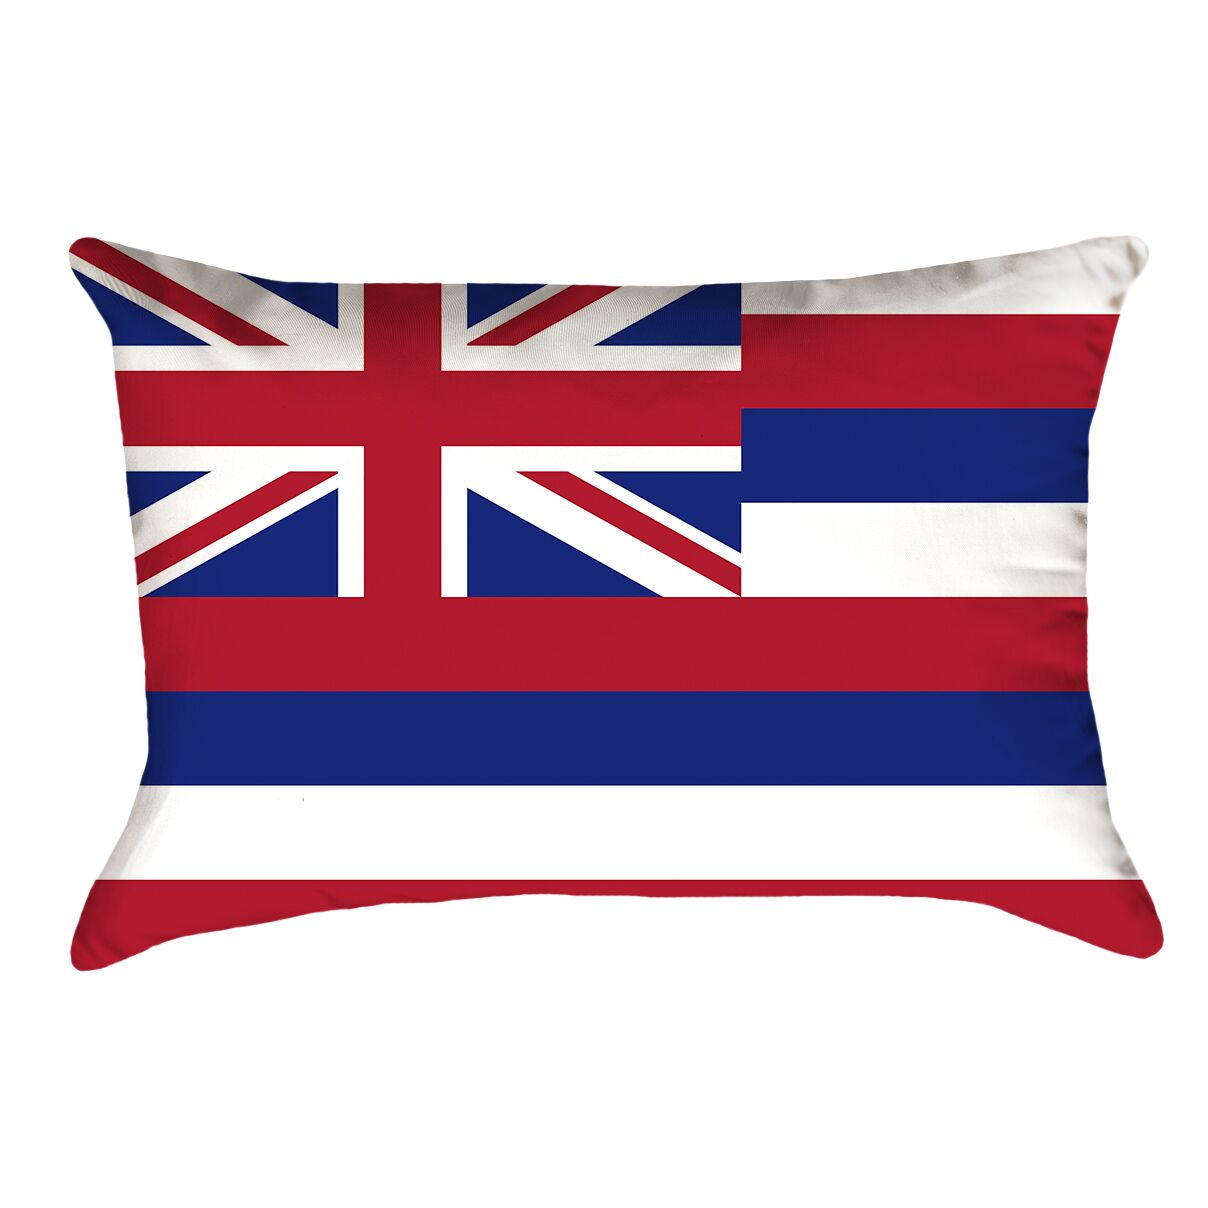 Centers Hawaii Flag Pillow Material/Product Type: Poly Twill Double Sided Print/Lumbar Pillow